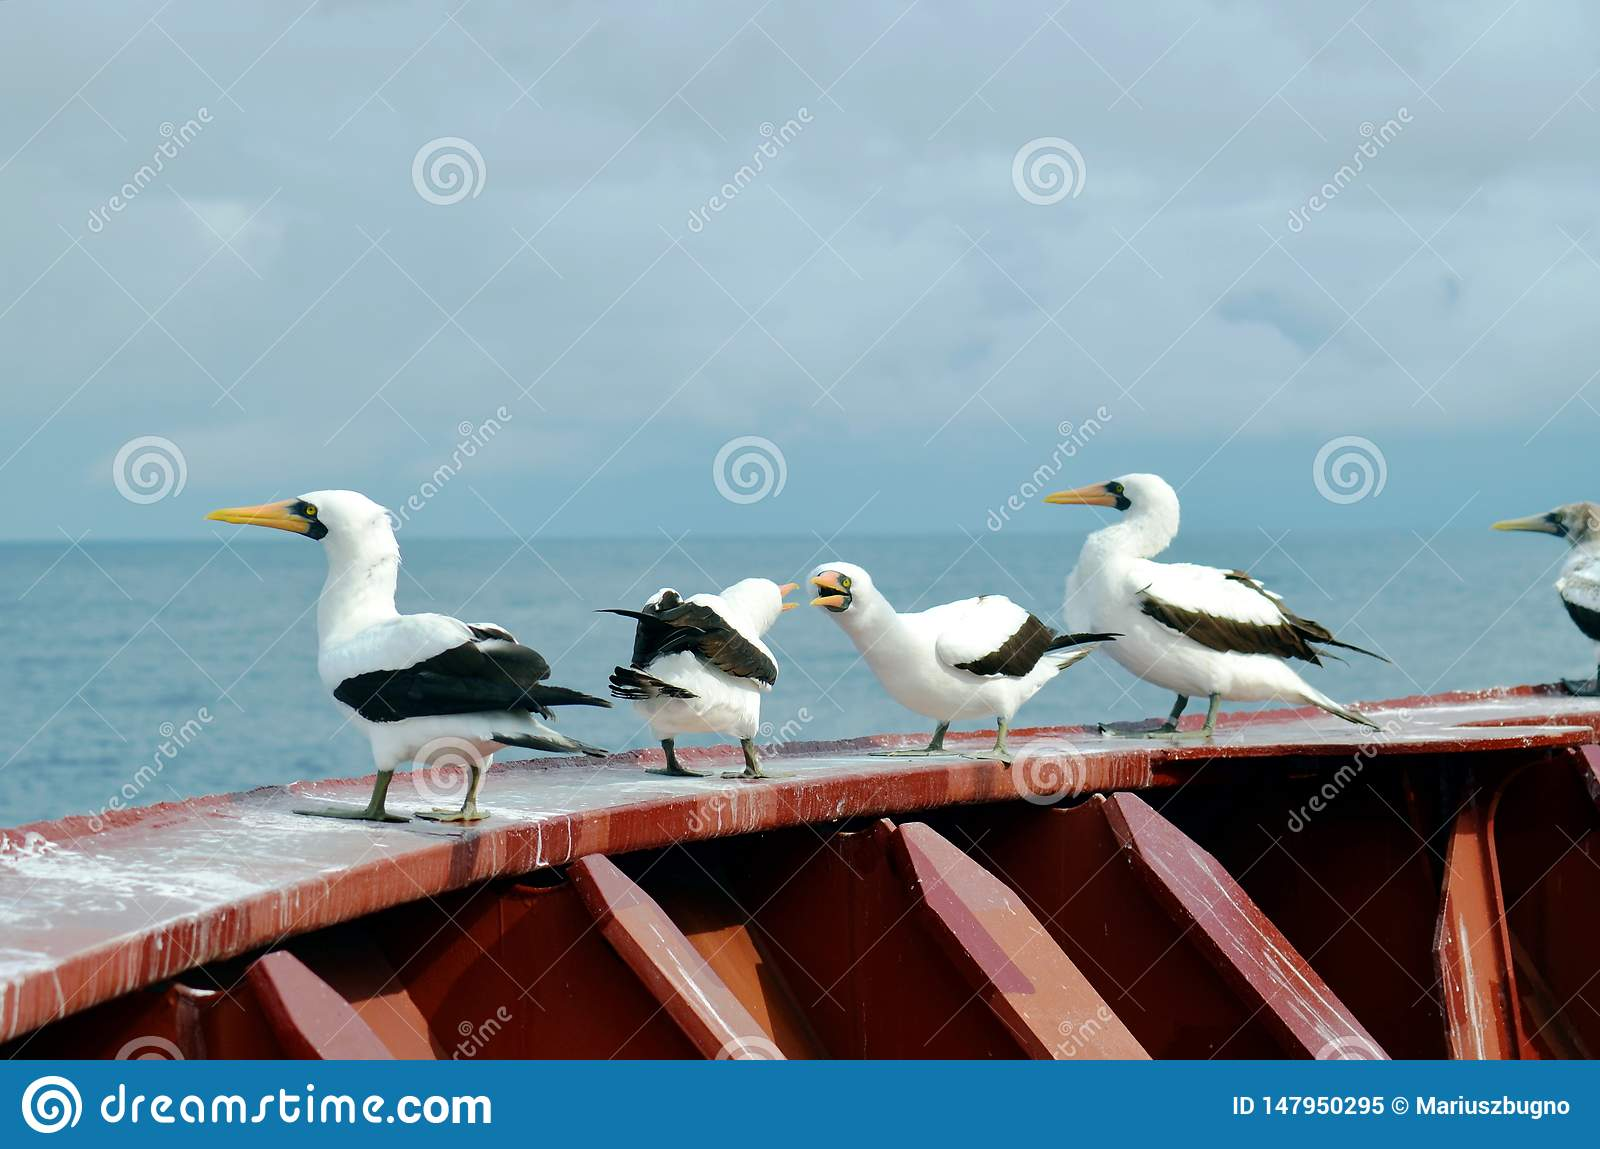 Seabirds seating on deck of cargo ship.